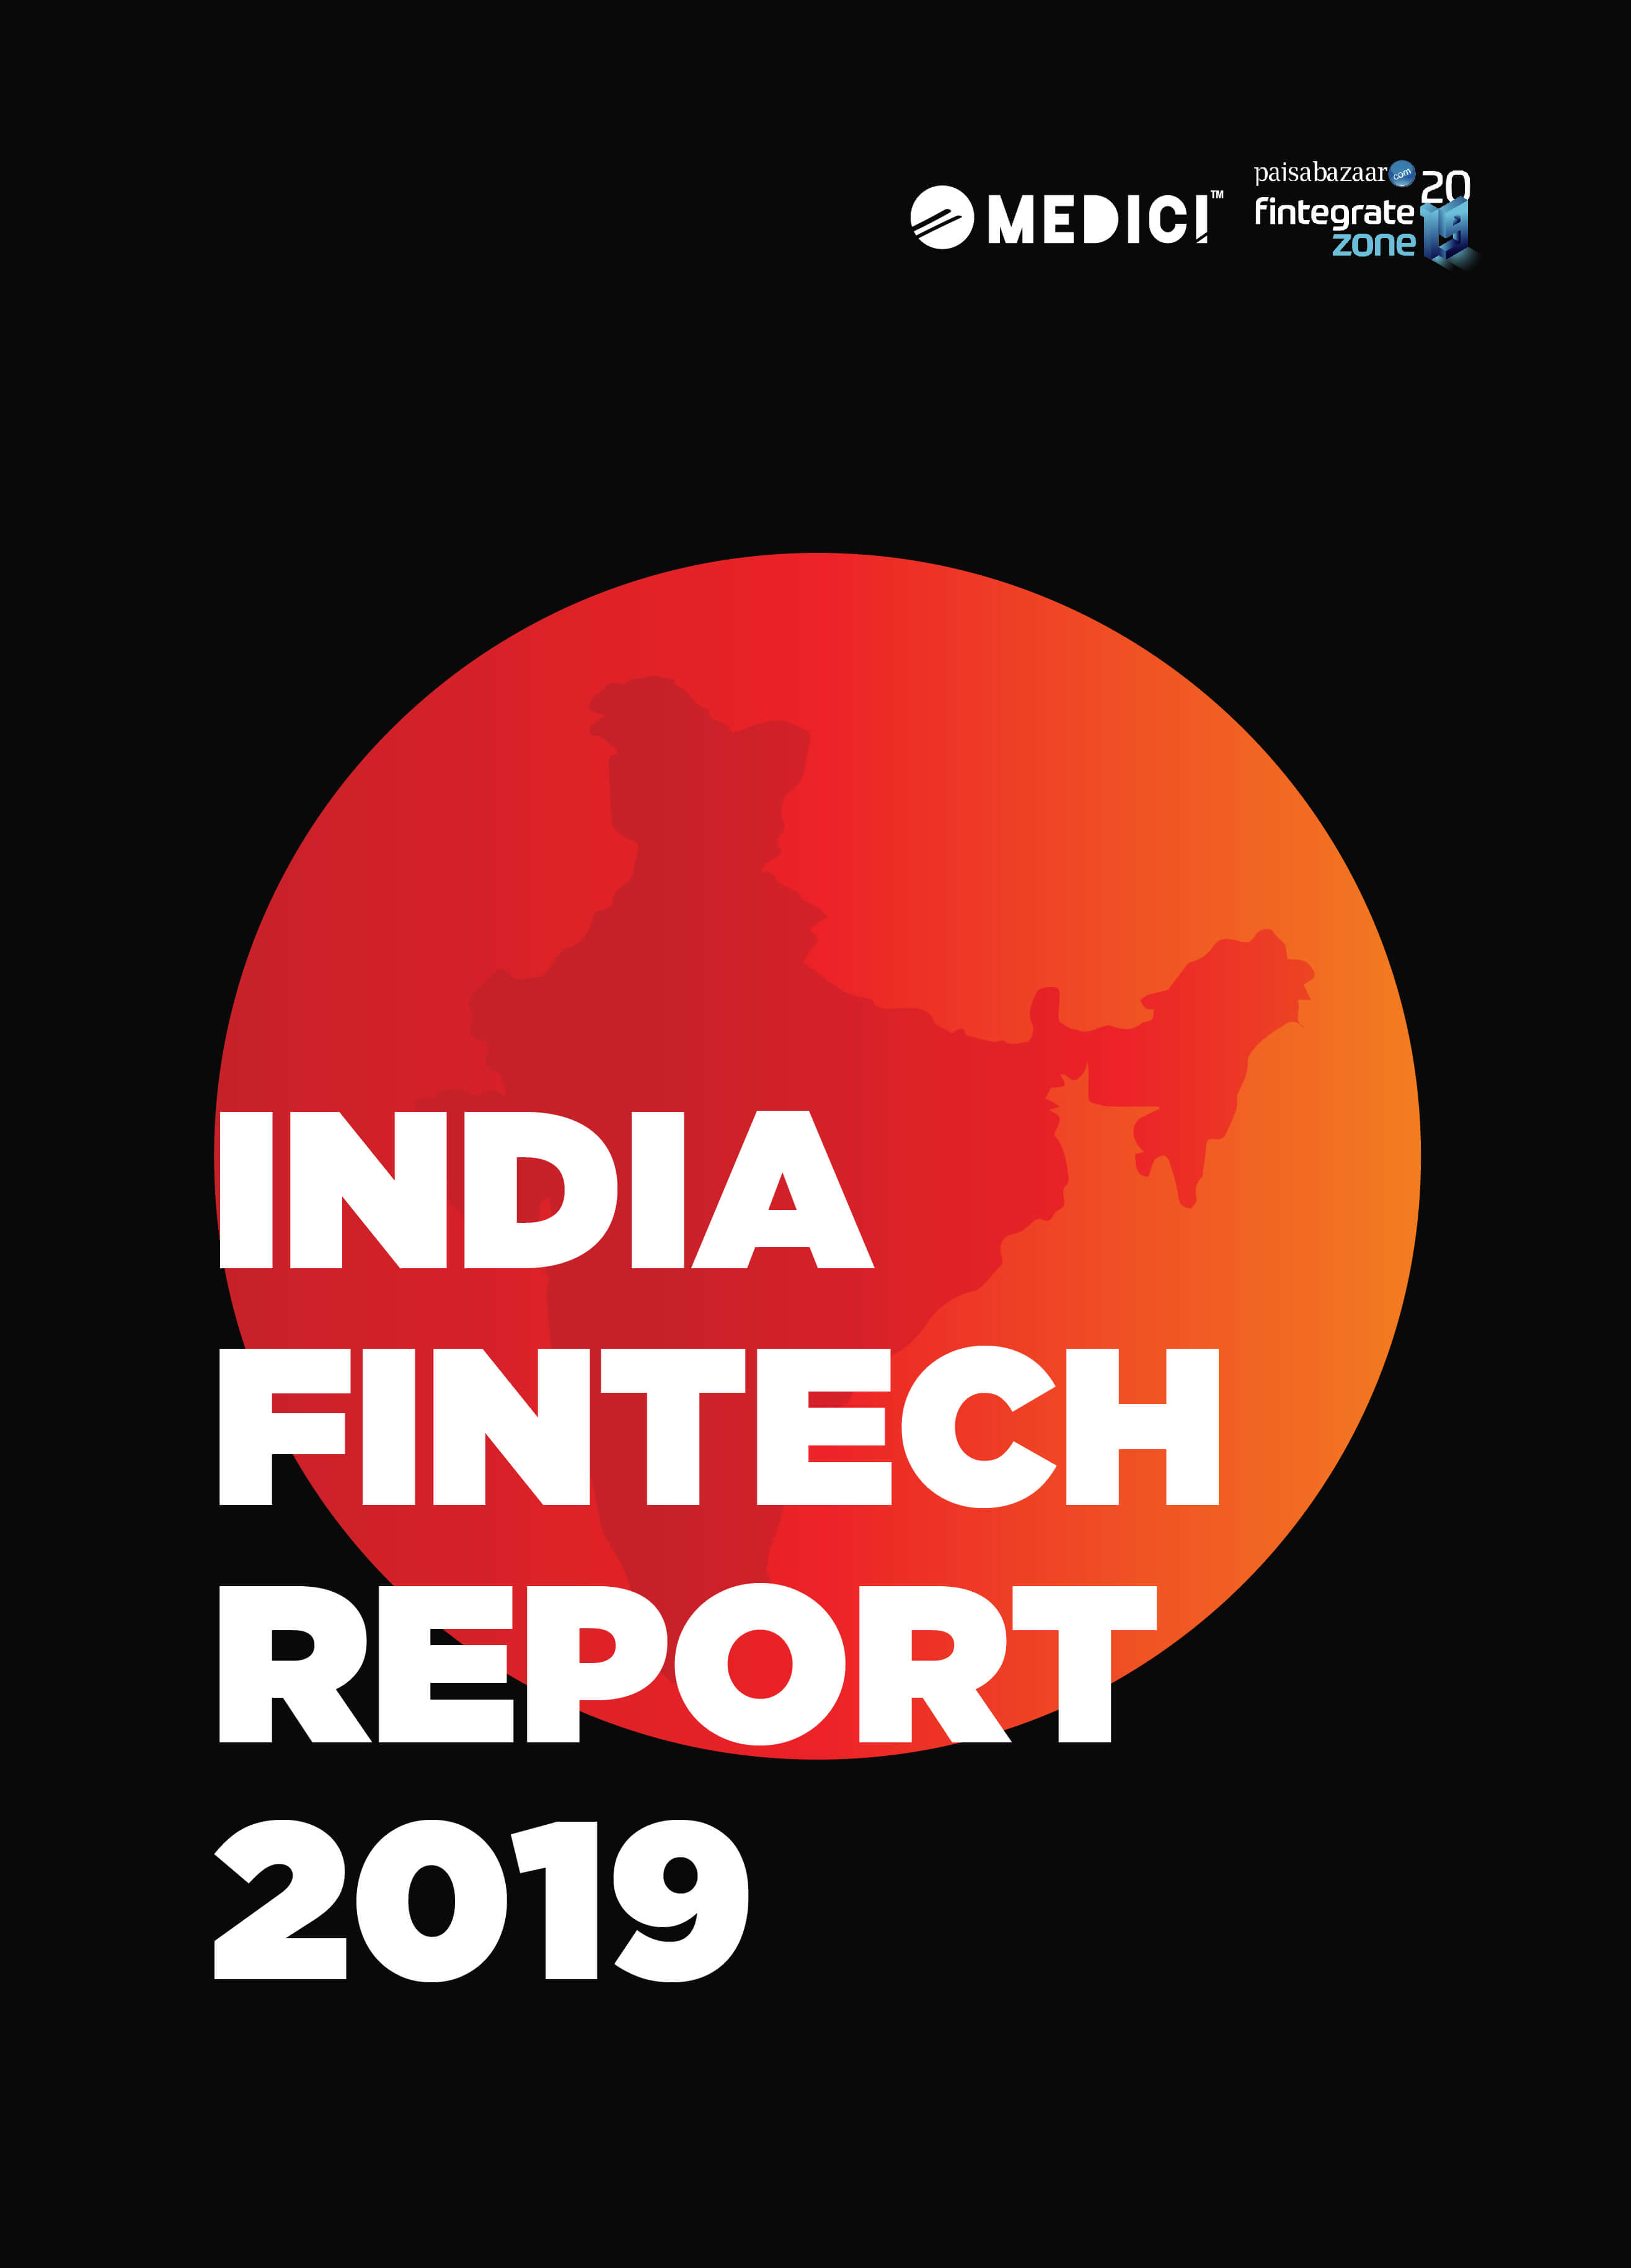 India FinTech Report 2019 by MEDICI